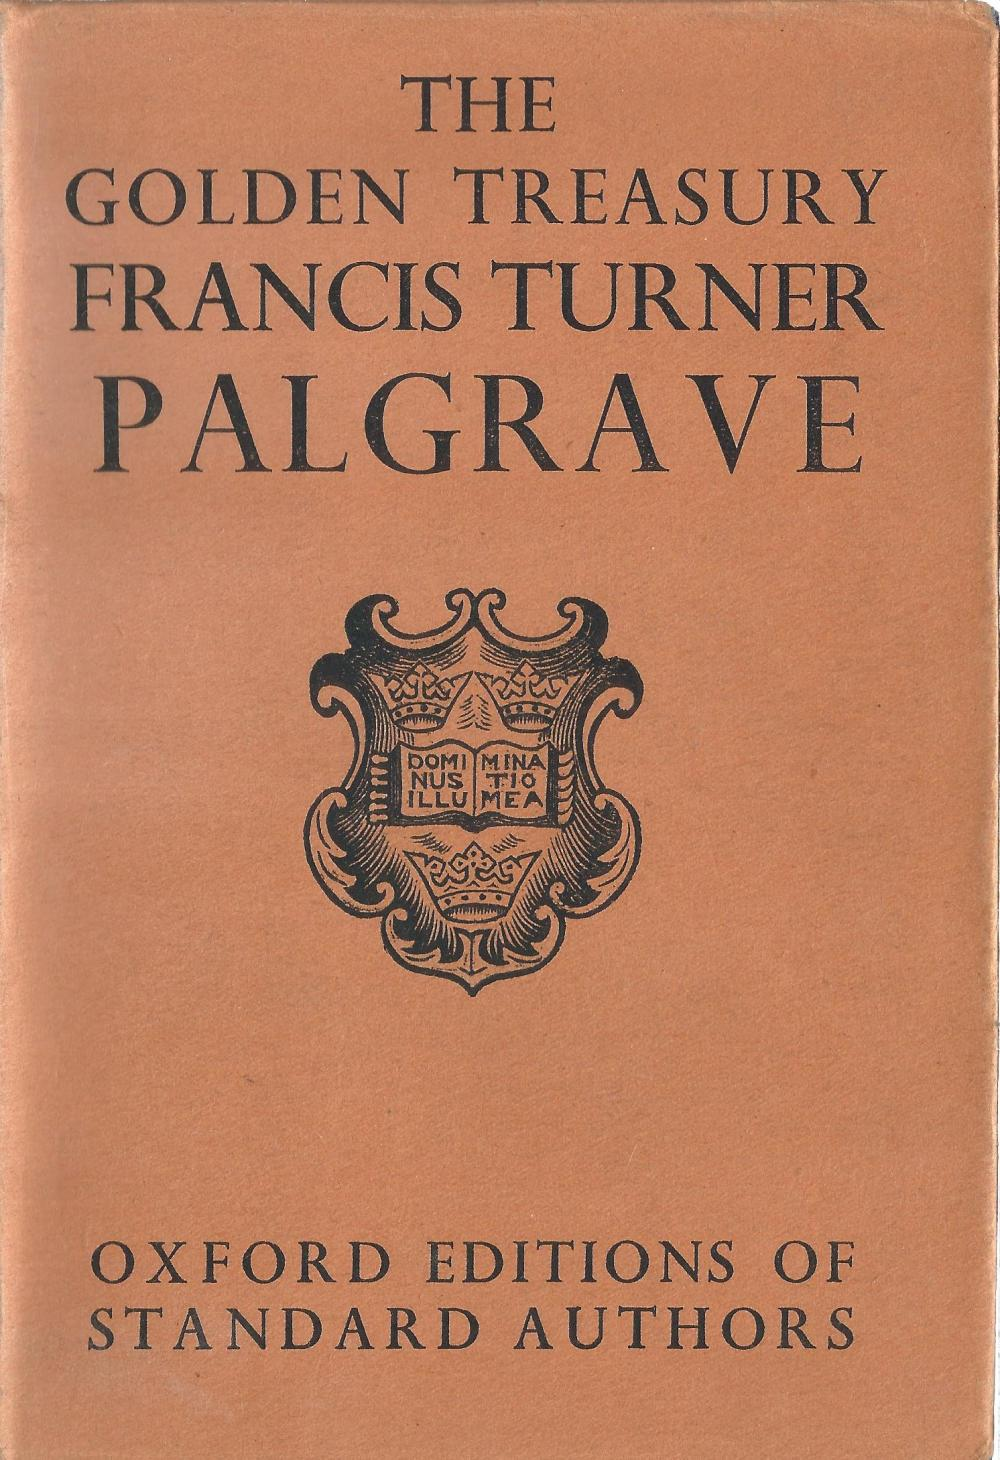 The Golden Treasury by Frances Turner Palgrave. Unsigned hardback book with dust jacket published